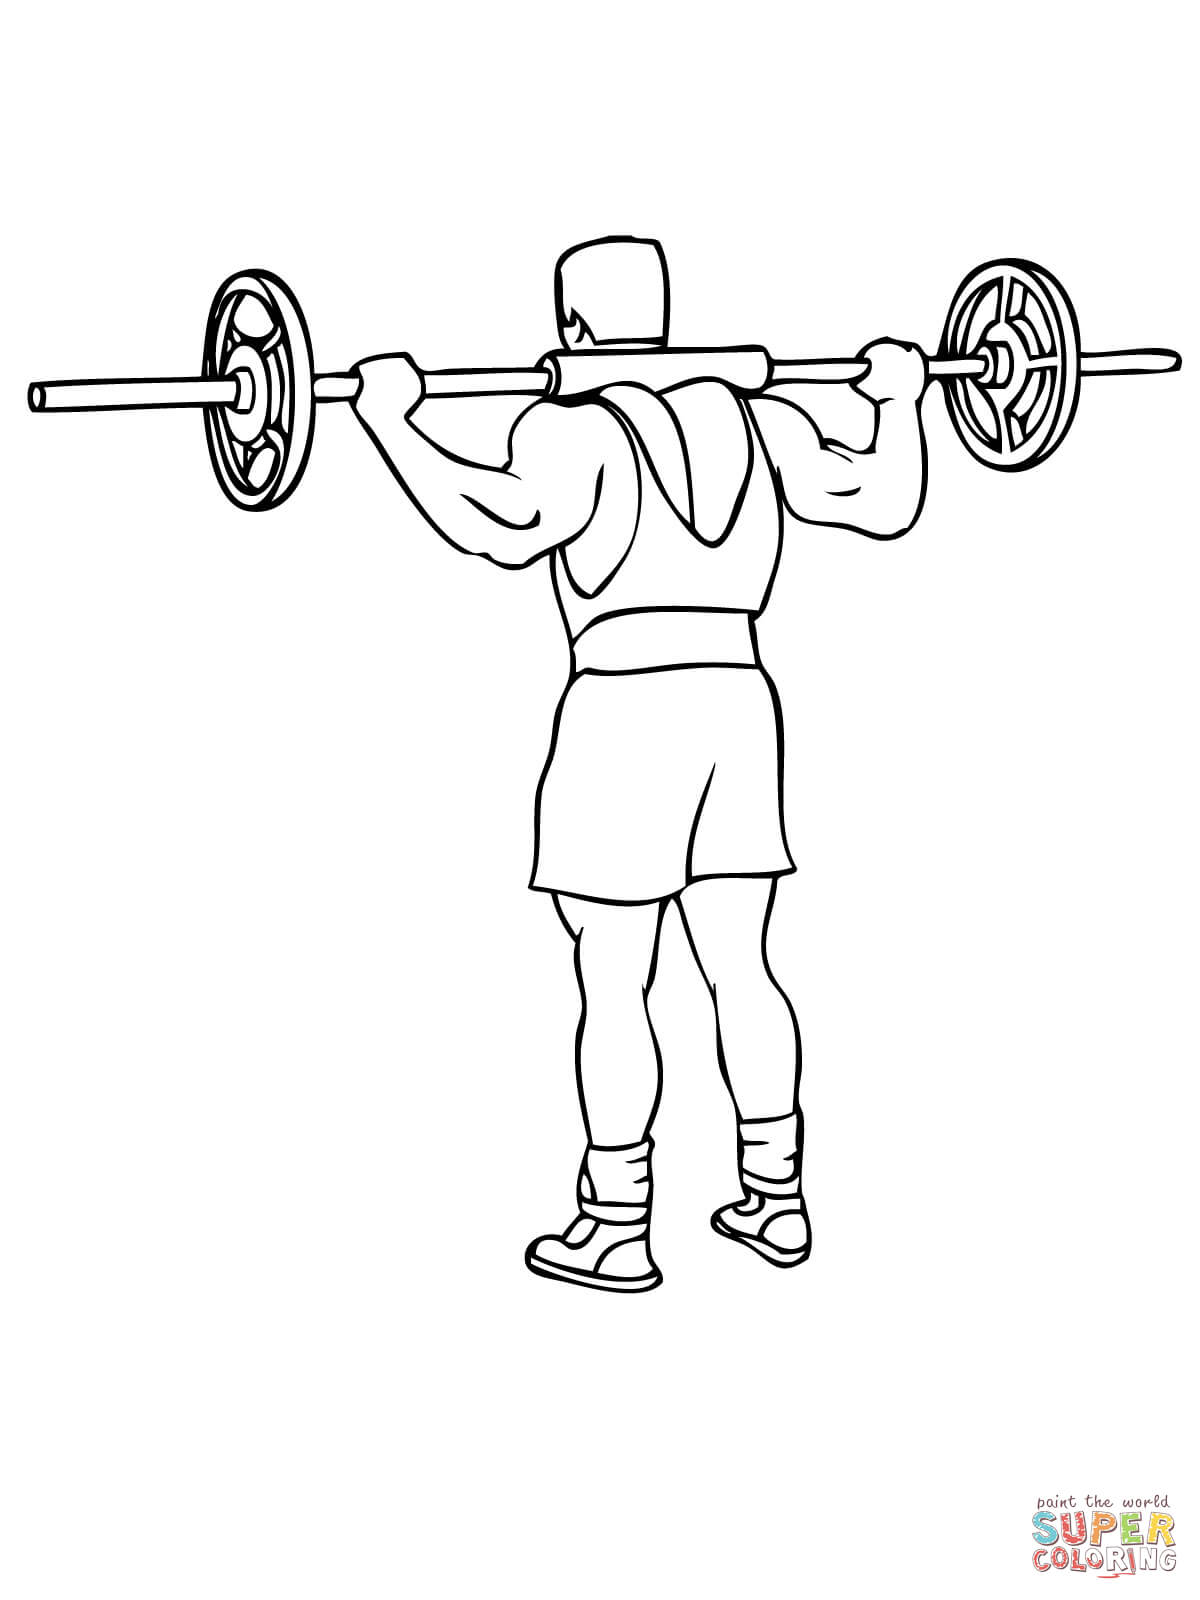 Weights Coloring Pages